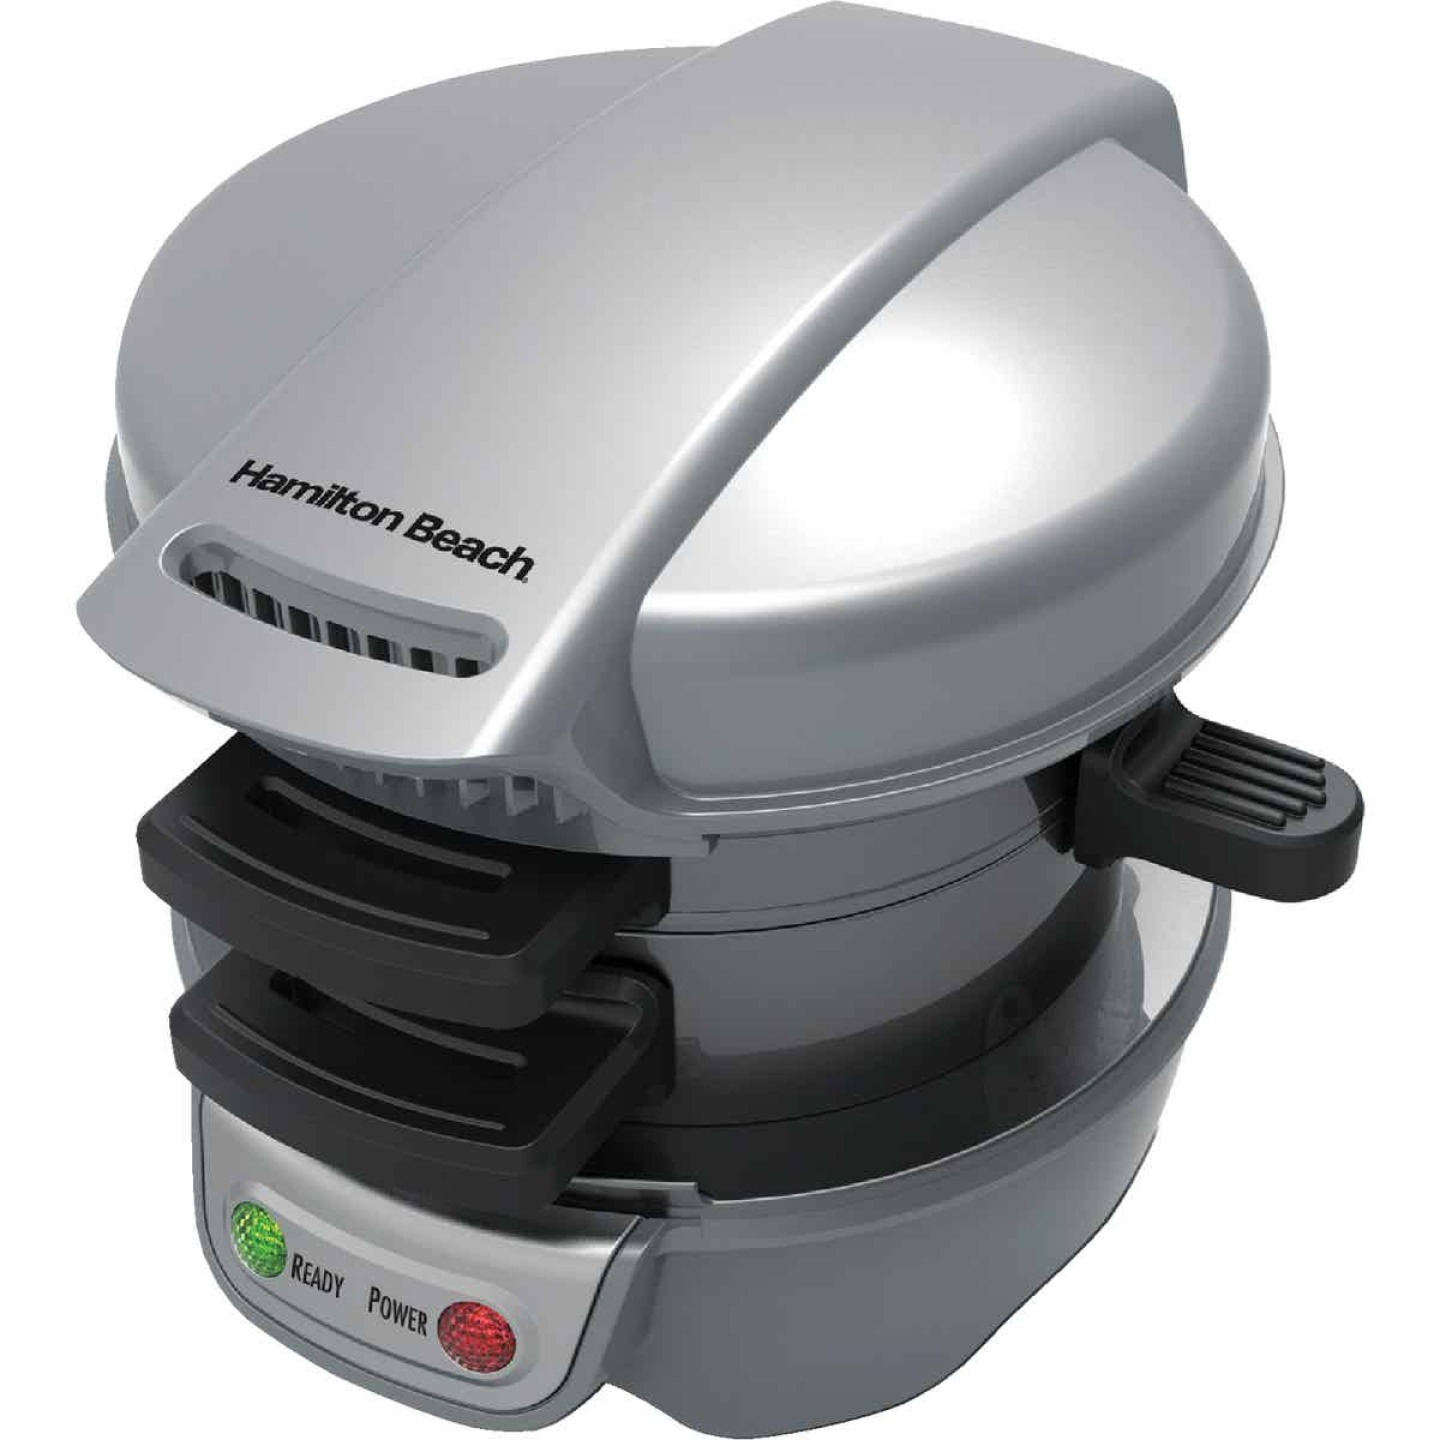 Hamilton Beach Breakfast Sandwich Maker Image 1